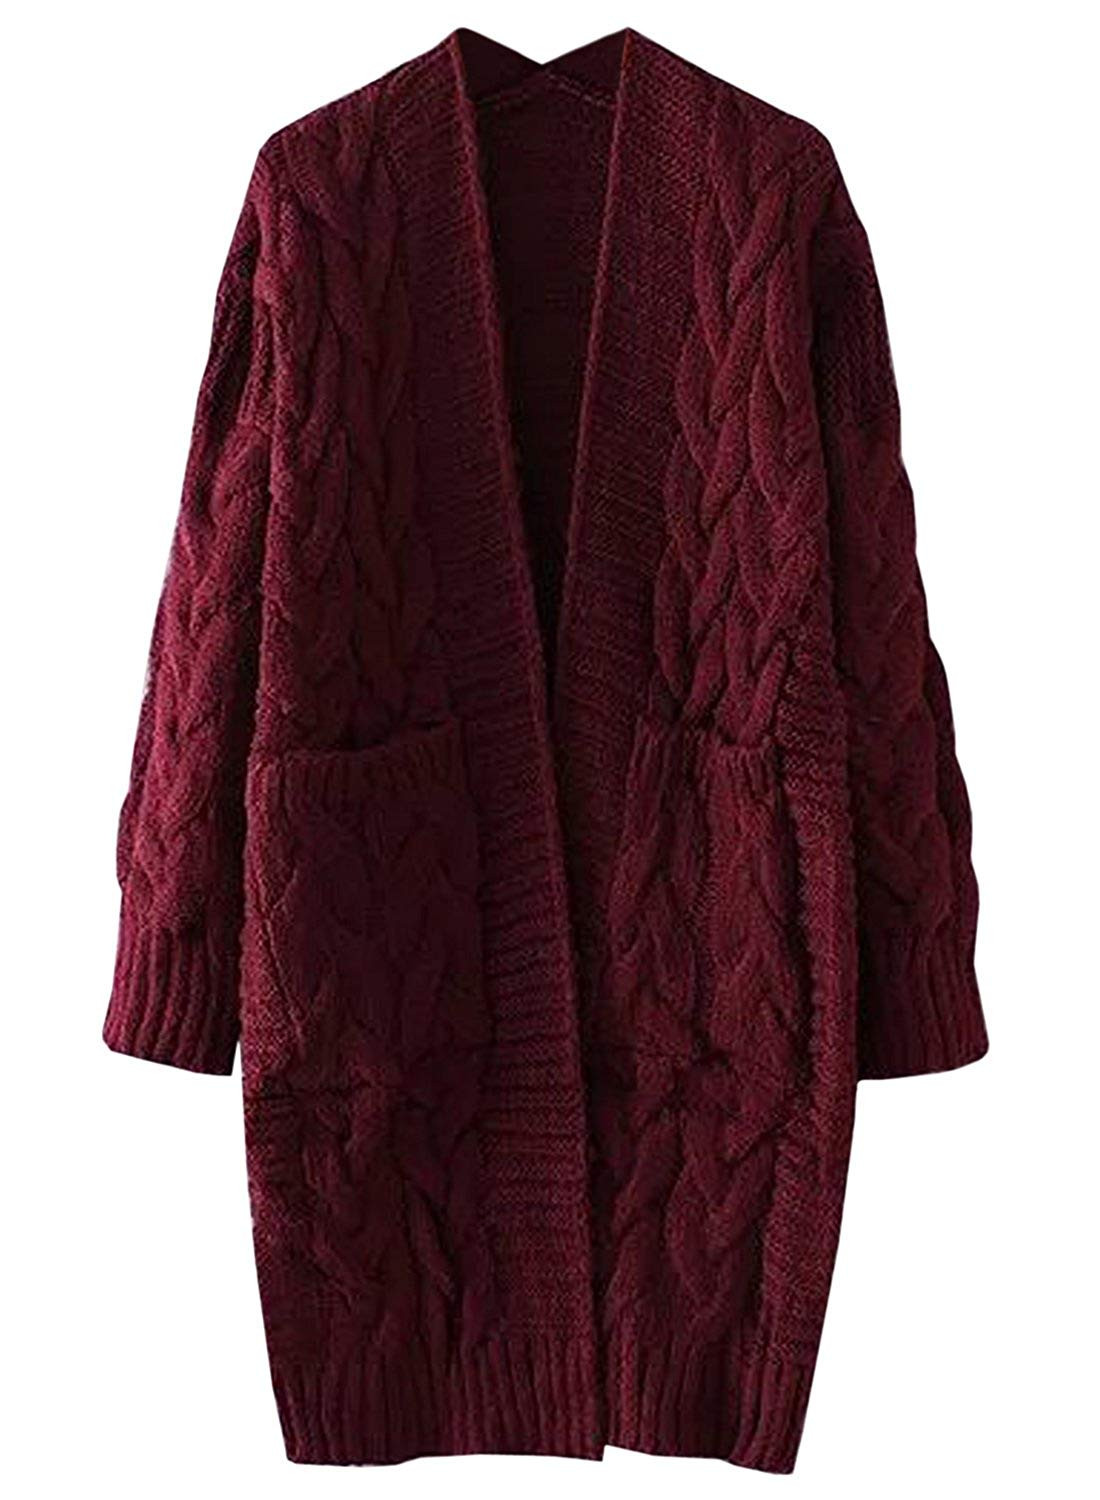 Elegant Women's Chunky Cable Knit Sweater Cable Knit Cardigan Sweater Of Wonderful 46 Models Cable Knit Cardigan Sweater